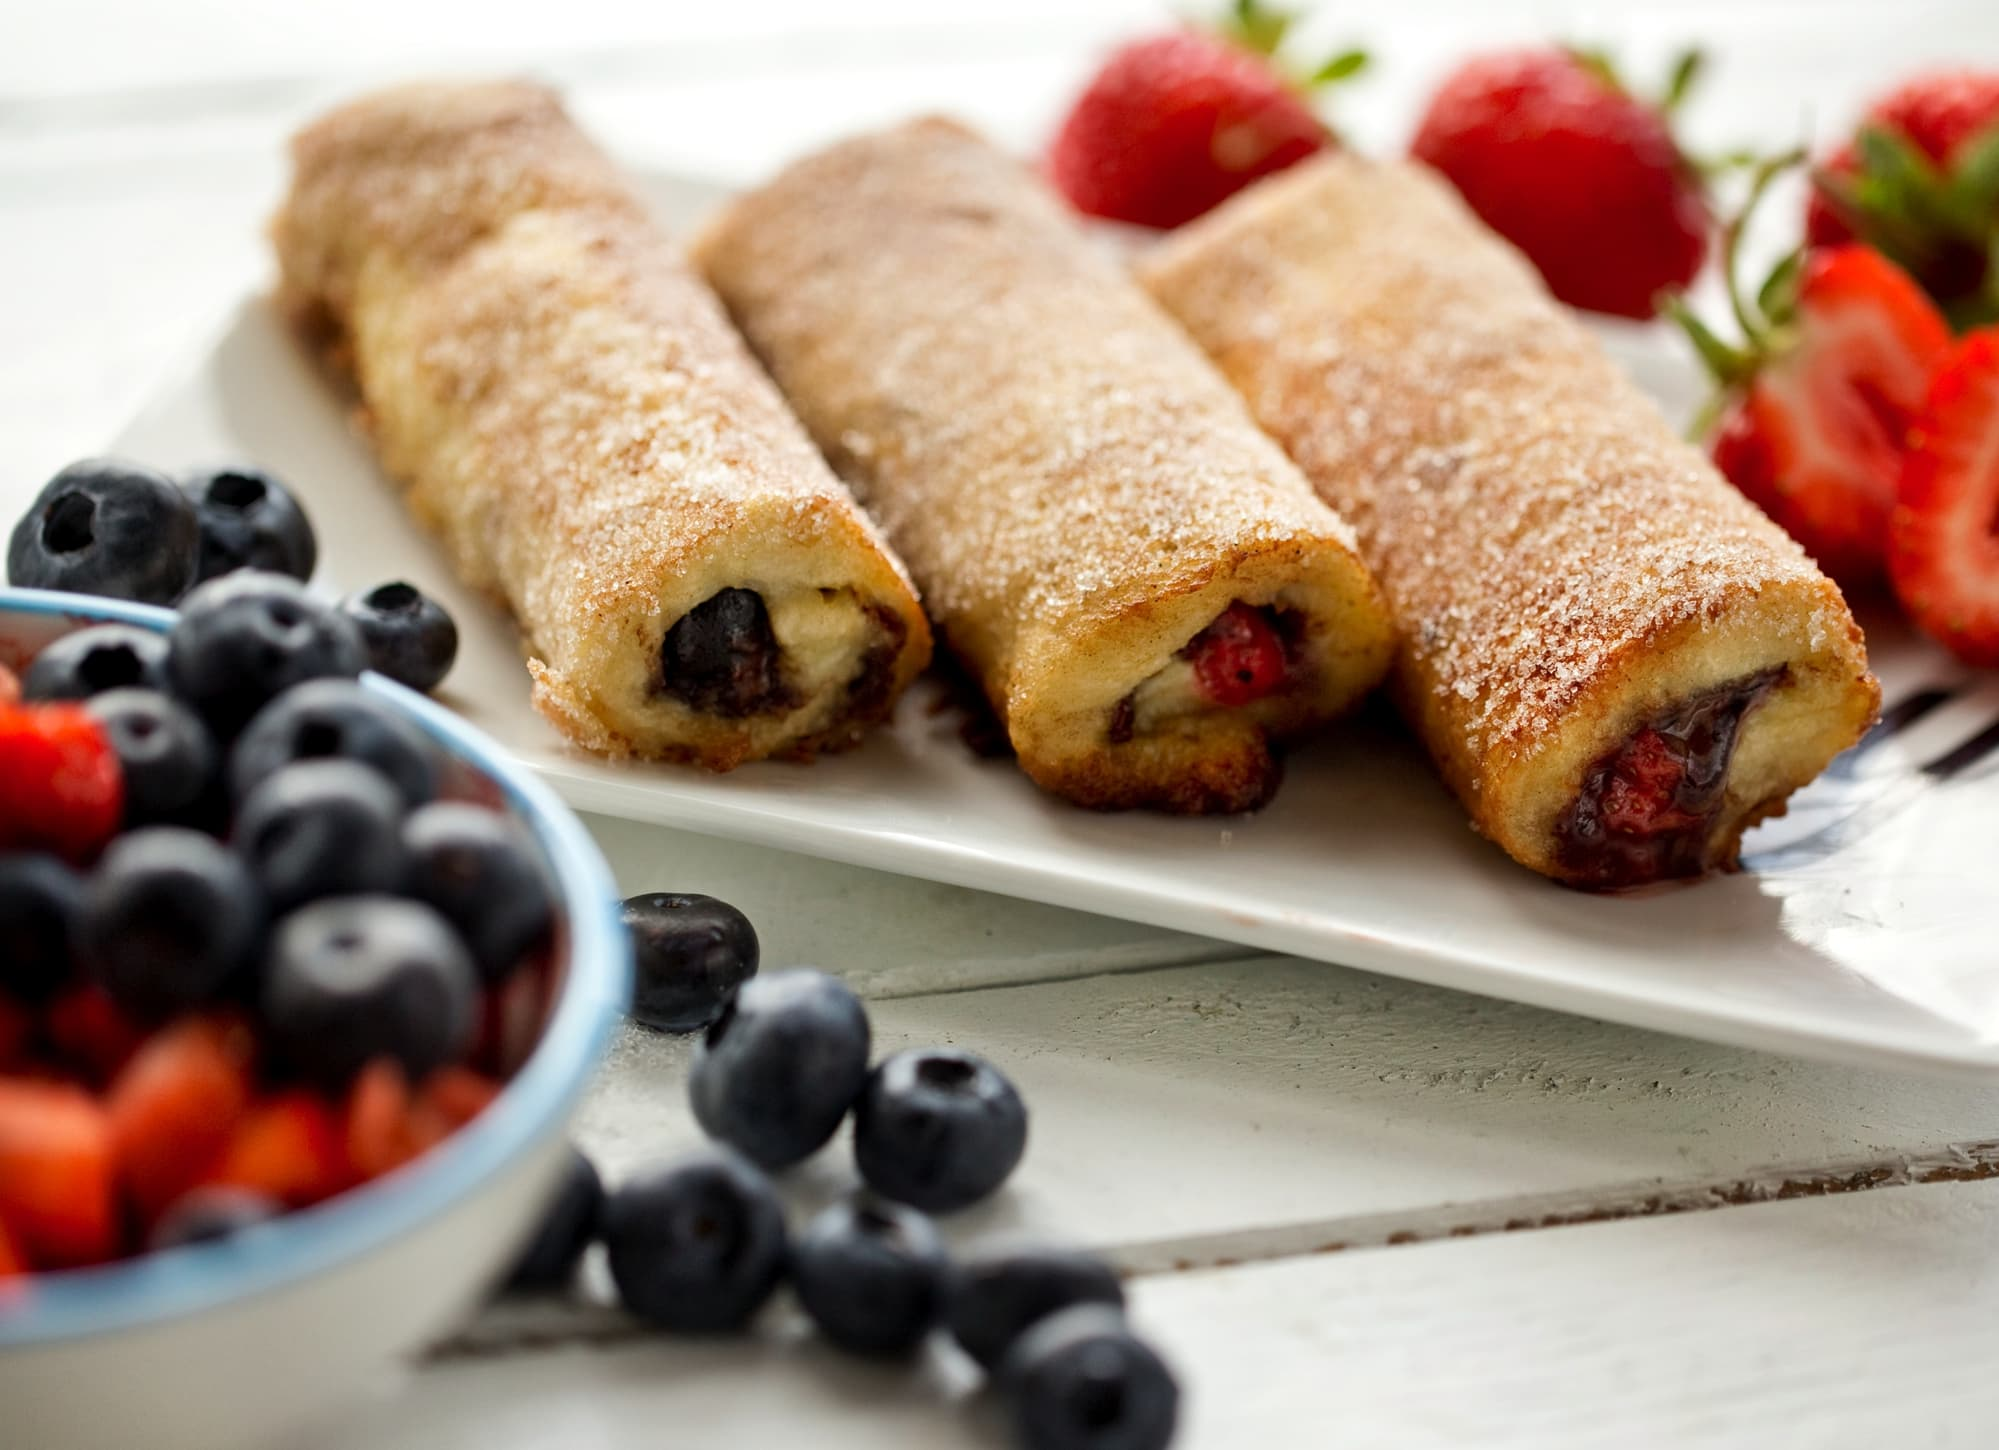 FRENCH TOAST CHOCO ROLLS WITH BERRIES